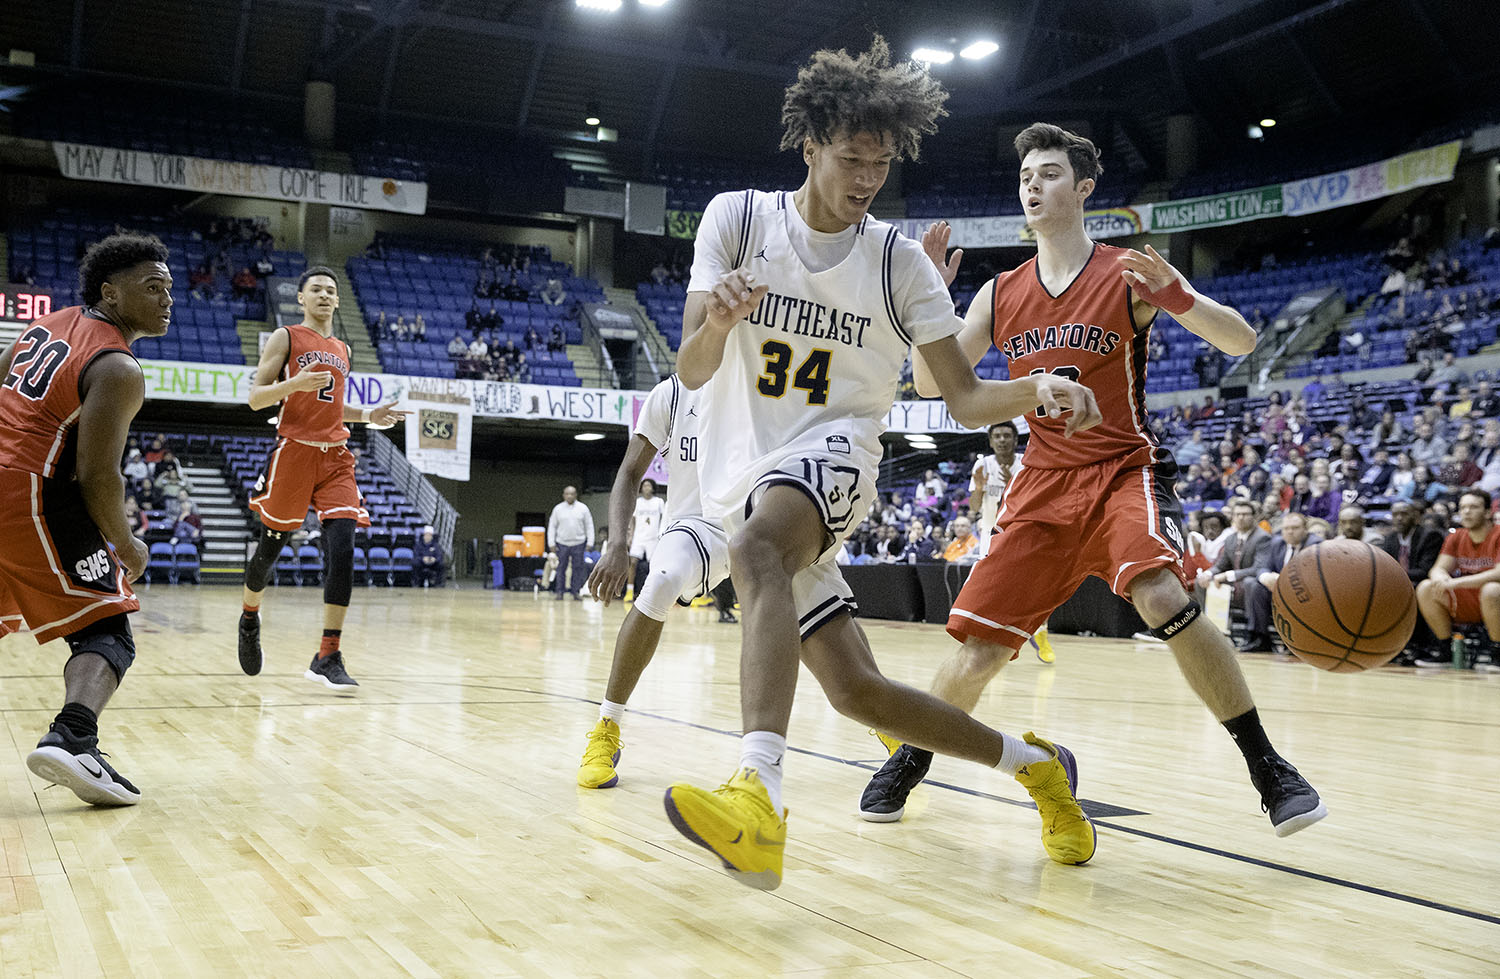 Southeast's Michael Taylor looses control of the ball under pressure from Springfield during the Boys City Tournament at the Bank of Springfield Center Thursday, Jan. 17, 2019.  [Ted Schurter/The State Journal-Register]